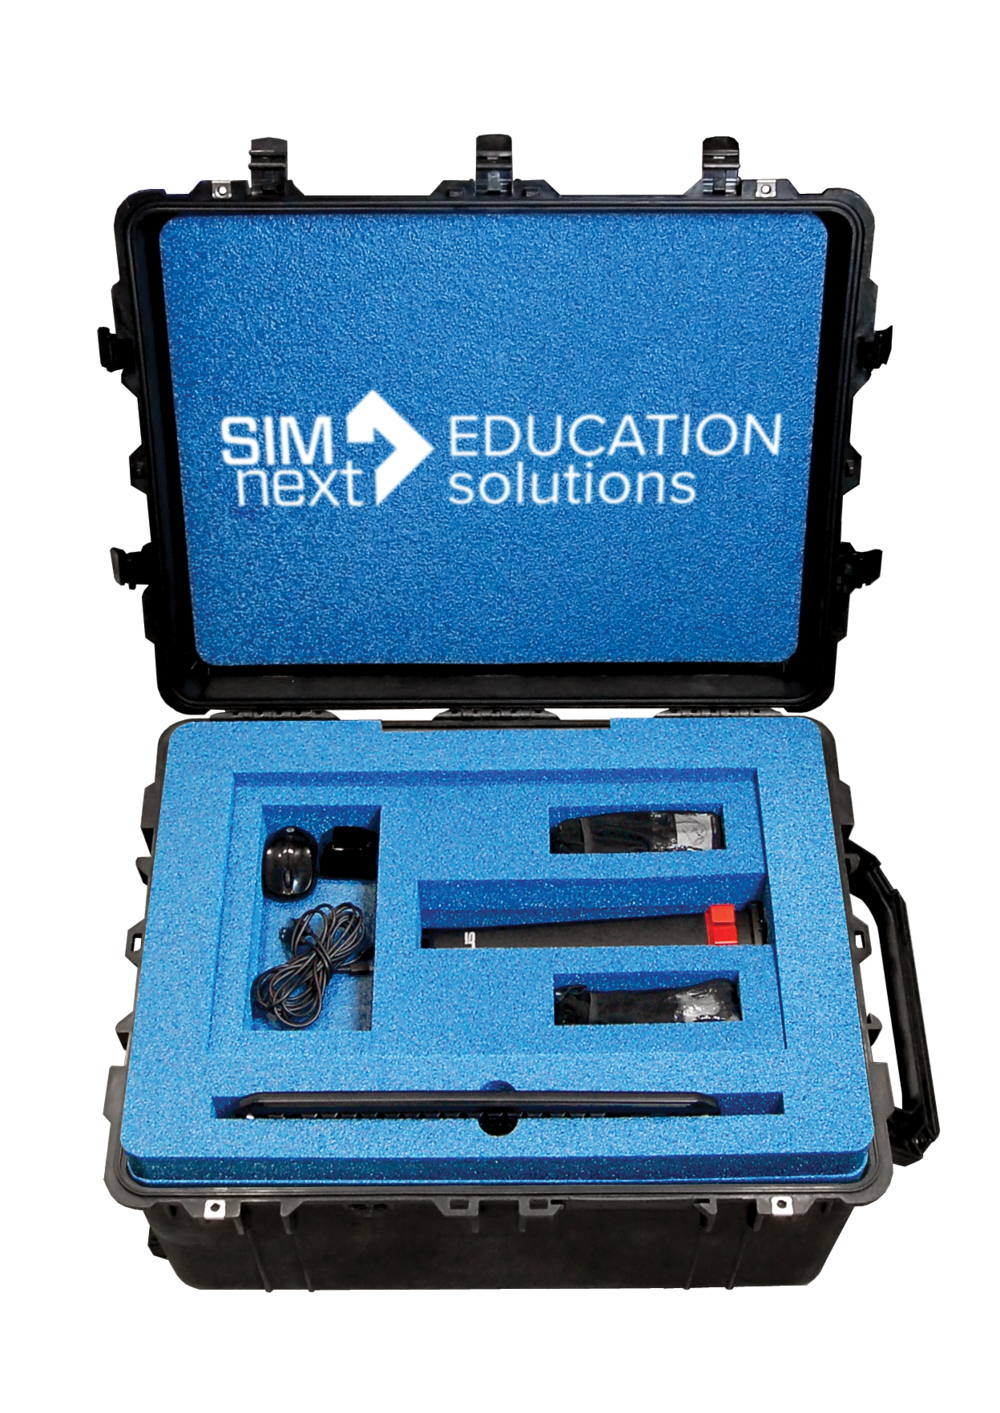 Haptics_Case_SIMnext_Education_Solutions.png